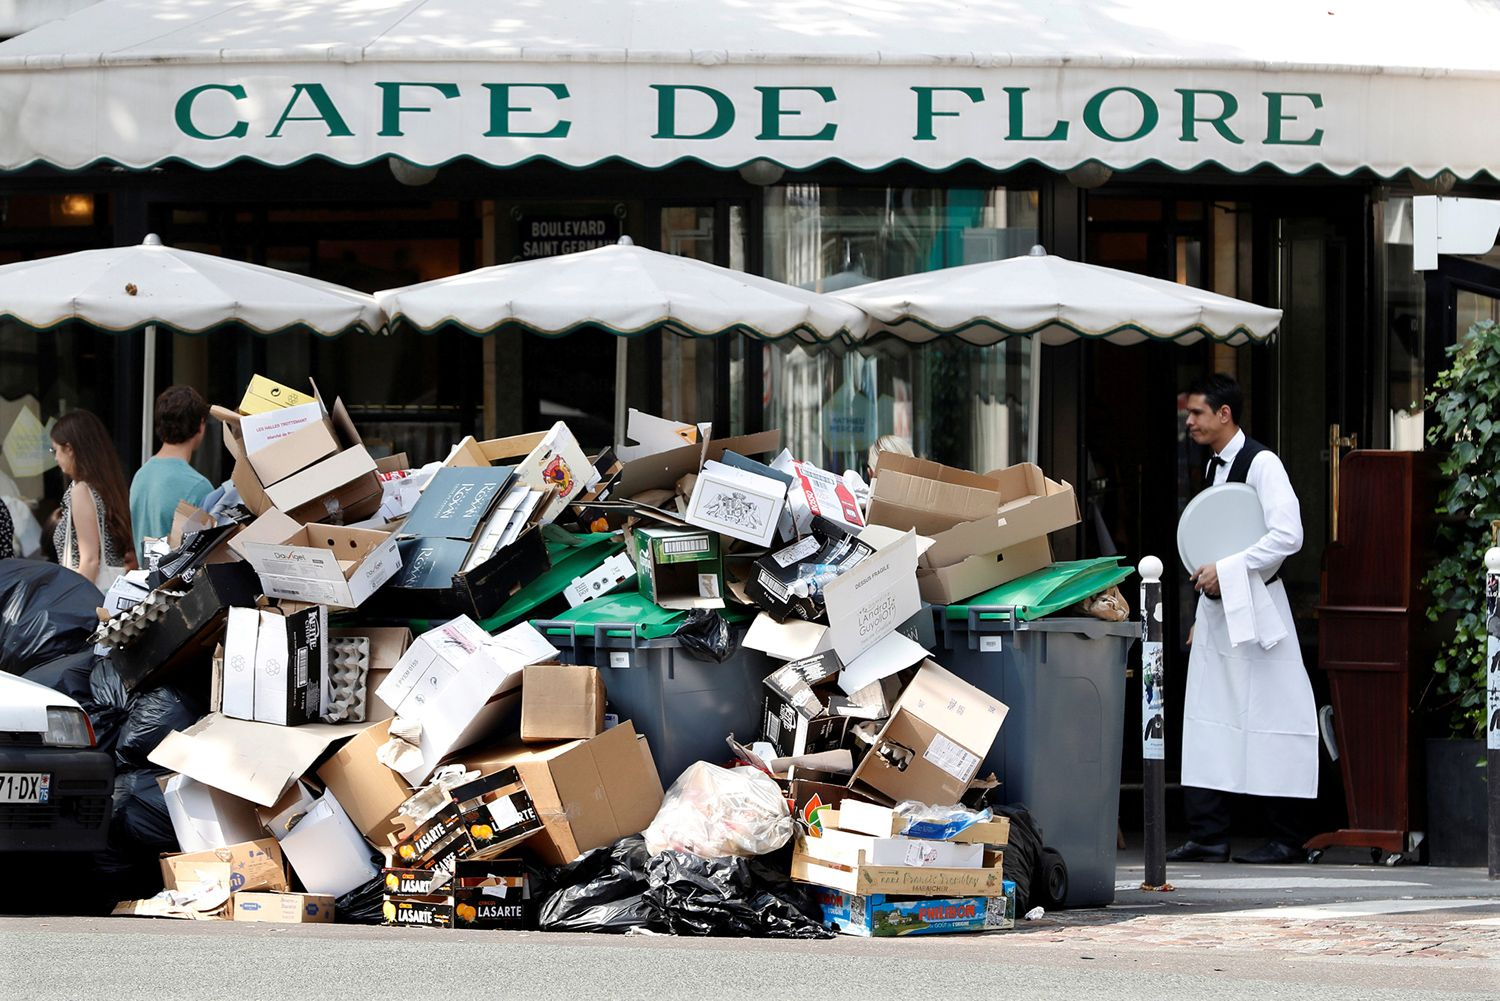 A waiter stands near a pile of trash bags in front of the Cafe de Flore in Paris during a garbage-collector and sewer-worker strike in Paris to protest the labor reforms law proposal, on June 8, 2016.